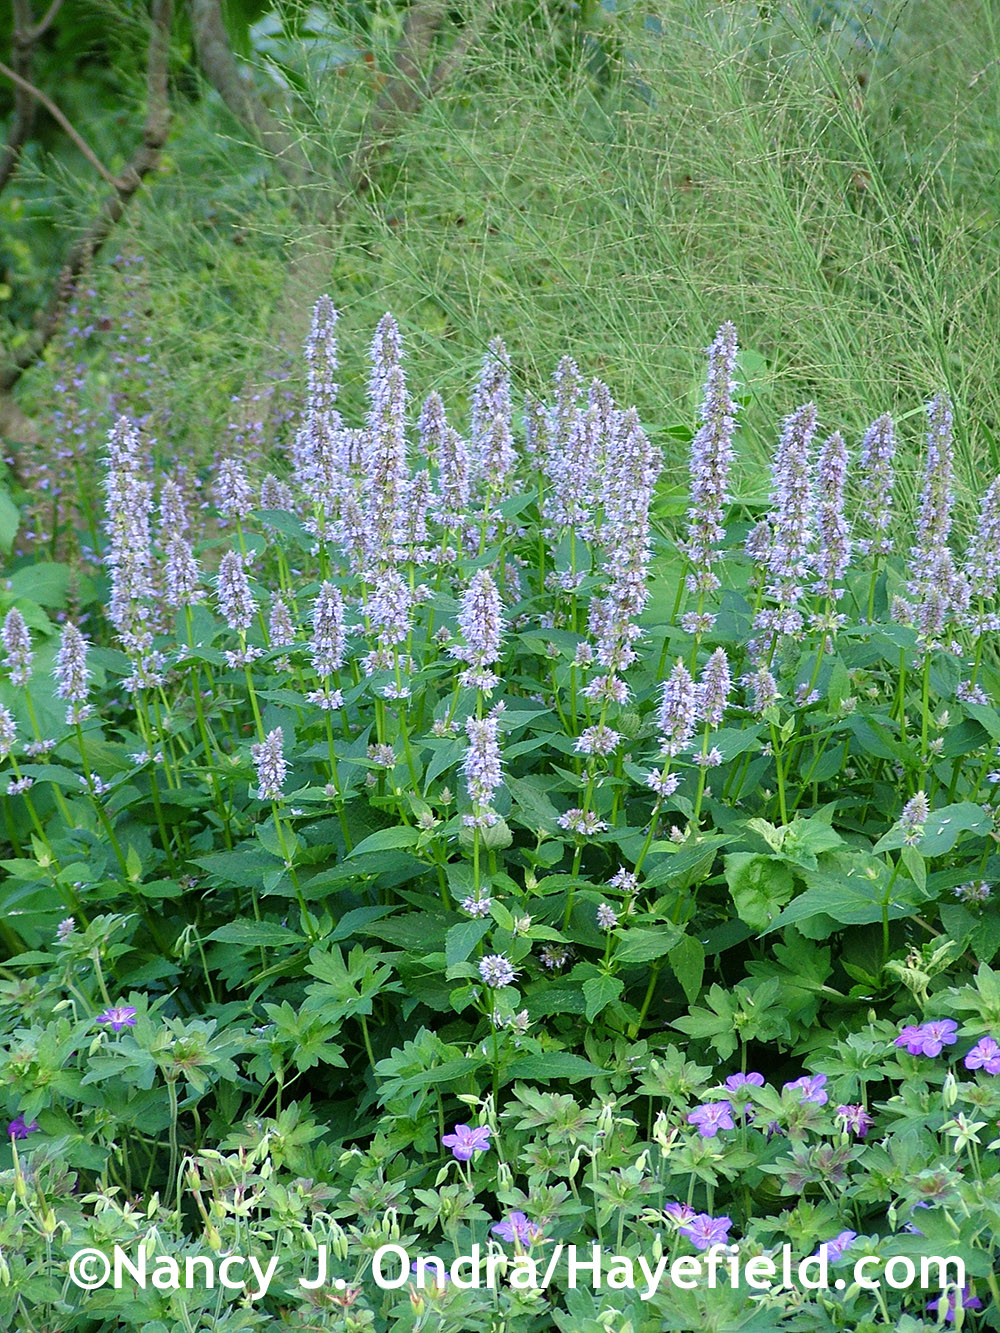 'Blue Fortune' anise hyssop